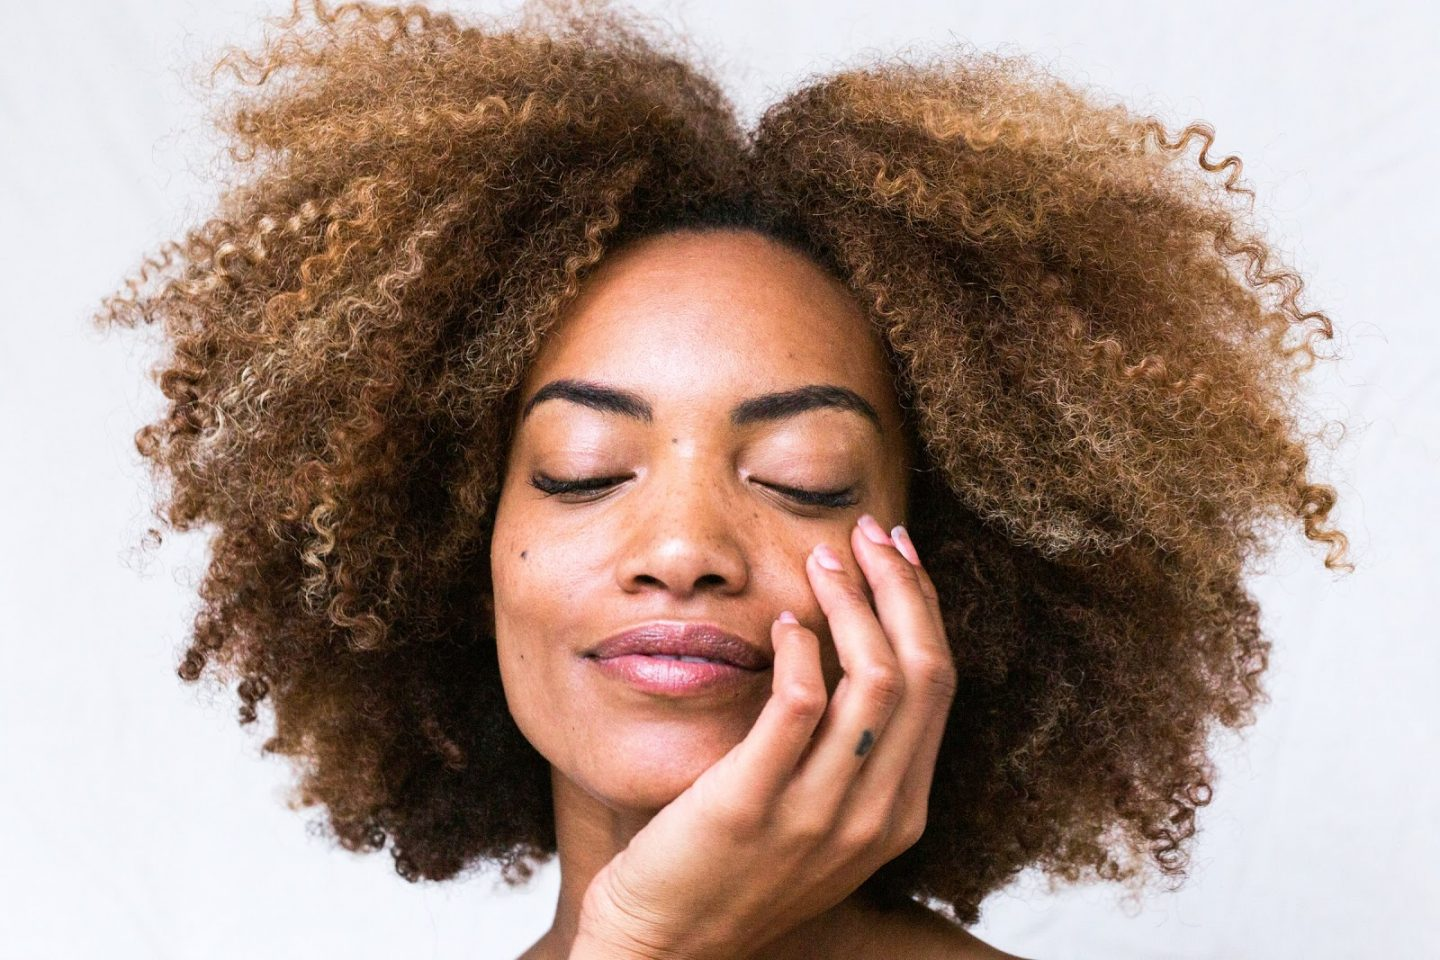 HOW CBD CAN REDUCE ACNE, ANTI-AGING & OTHER SKIN ISSUES